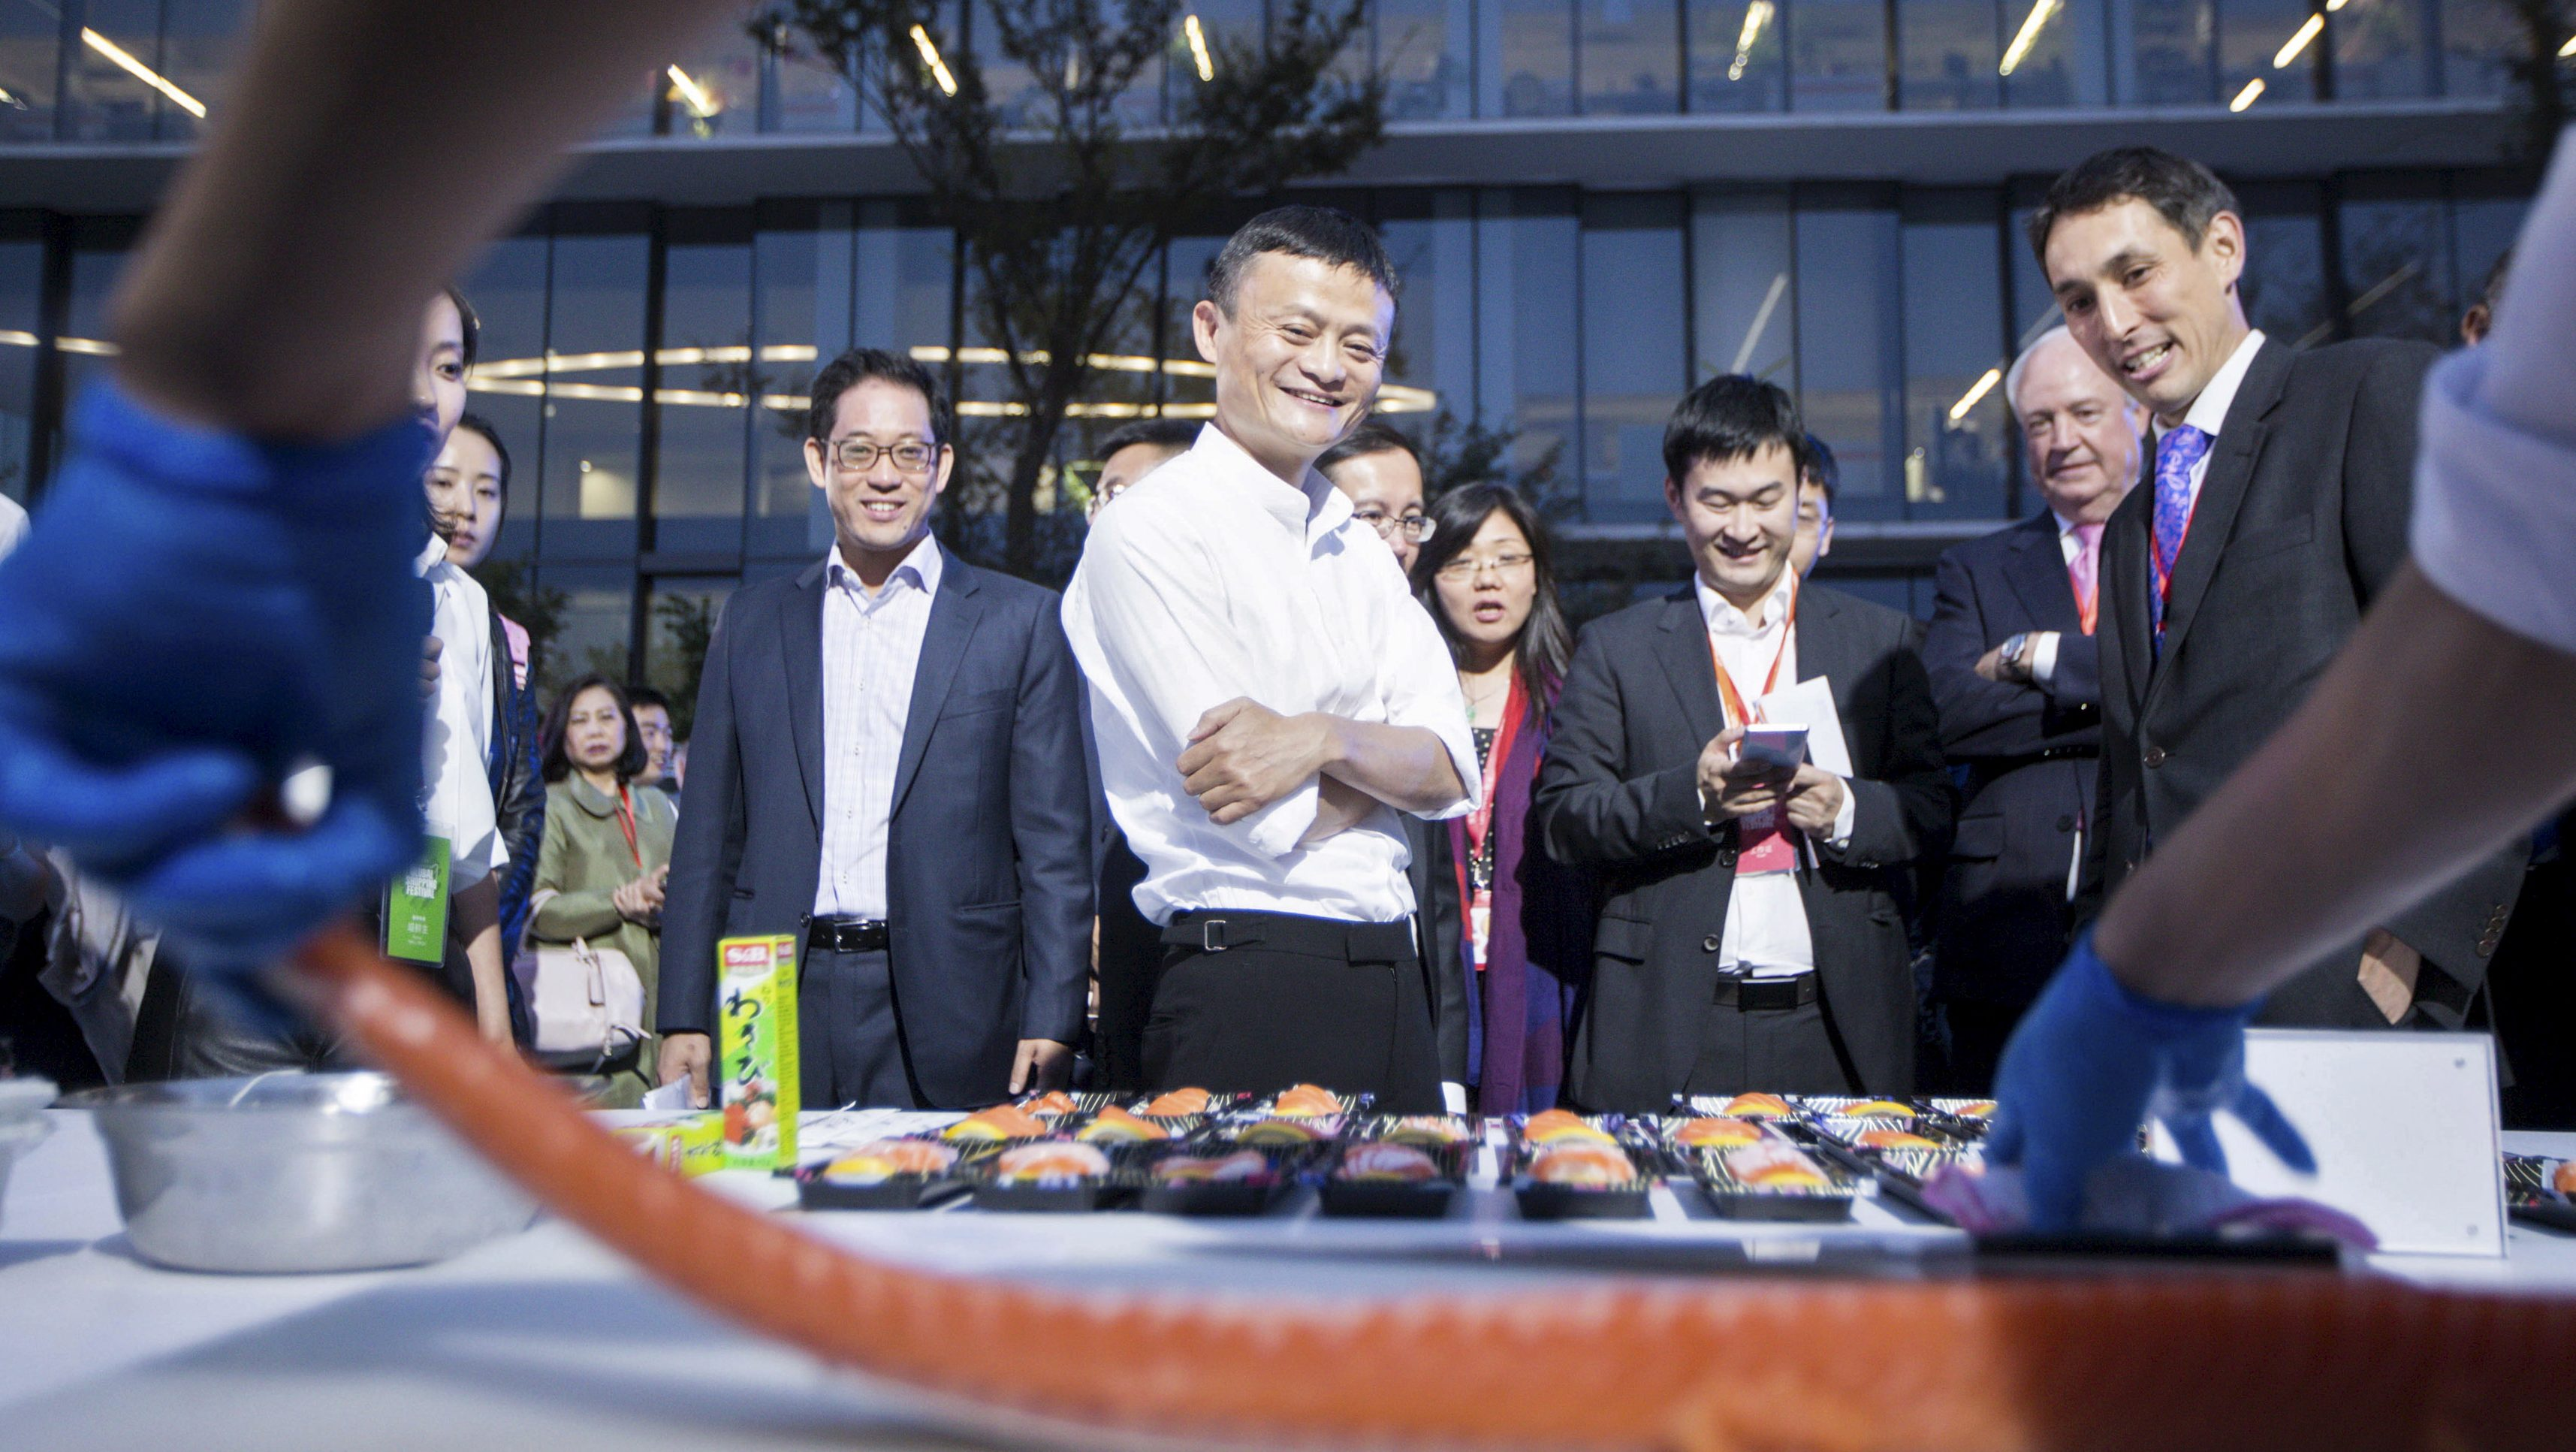 Alibaba Group's executive chairman Jack Ma (C) looks on as a chef prepares to slice salmon at a display area for fresh food ingredient vendors, who recently signed a cooperation agreement with Alibaba's Tmall, after the launch event of Tmall 11.11 Global Shopping Festival, at the company's headquarters in Hangzhou, Zhejiang province, China, October 13, 2015. Reuters/China Stringer Network